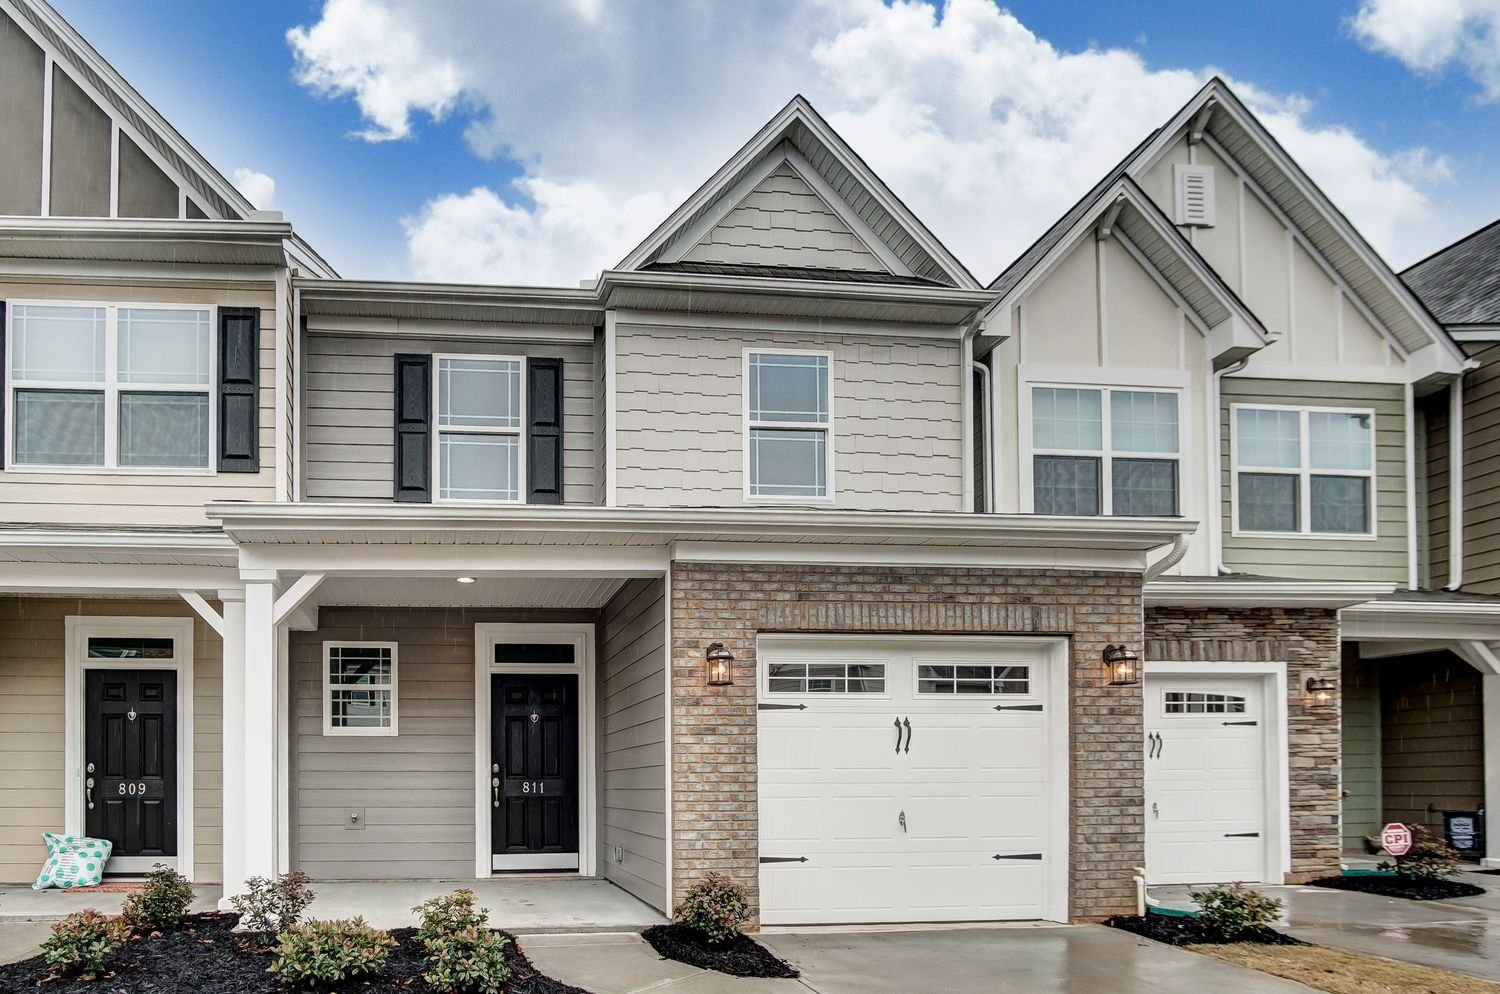 The Columbia townhome exterior